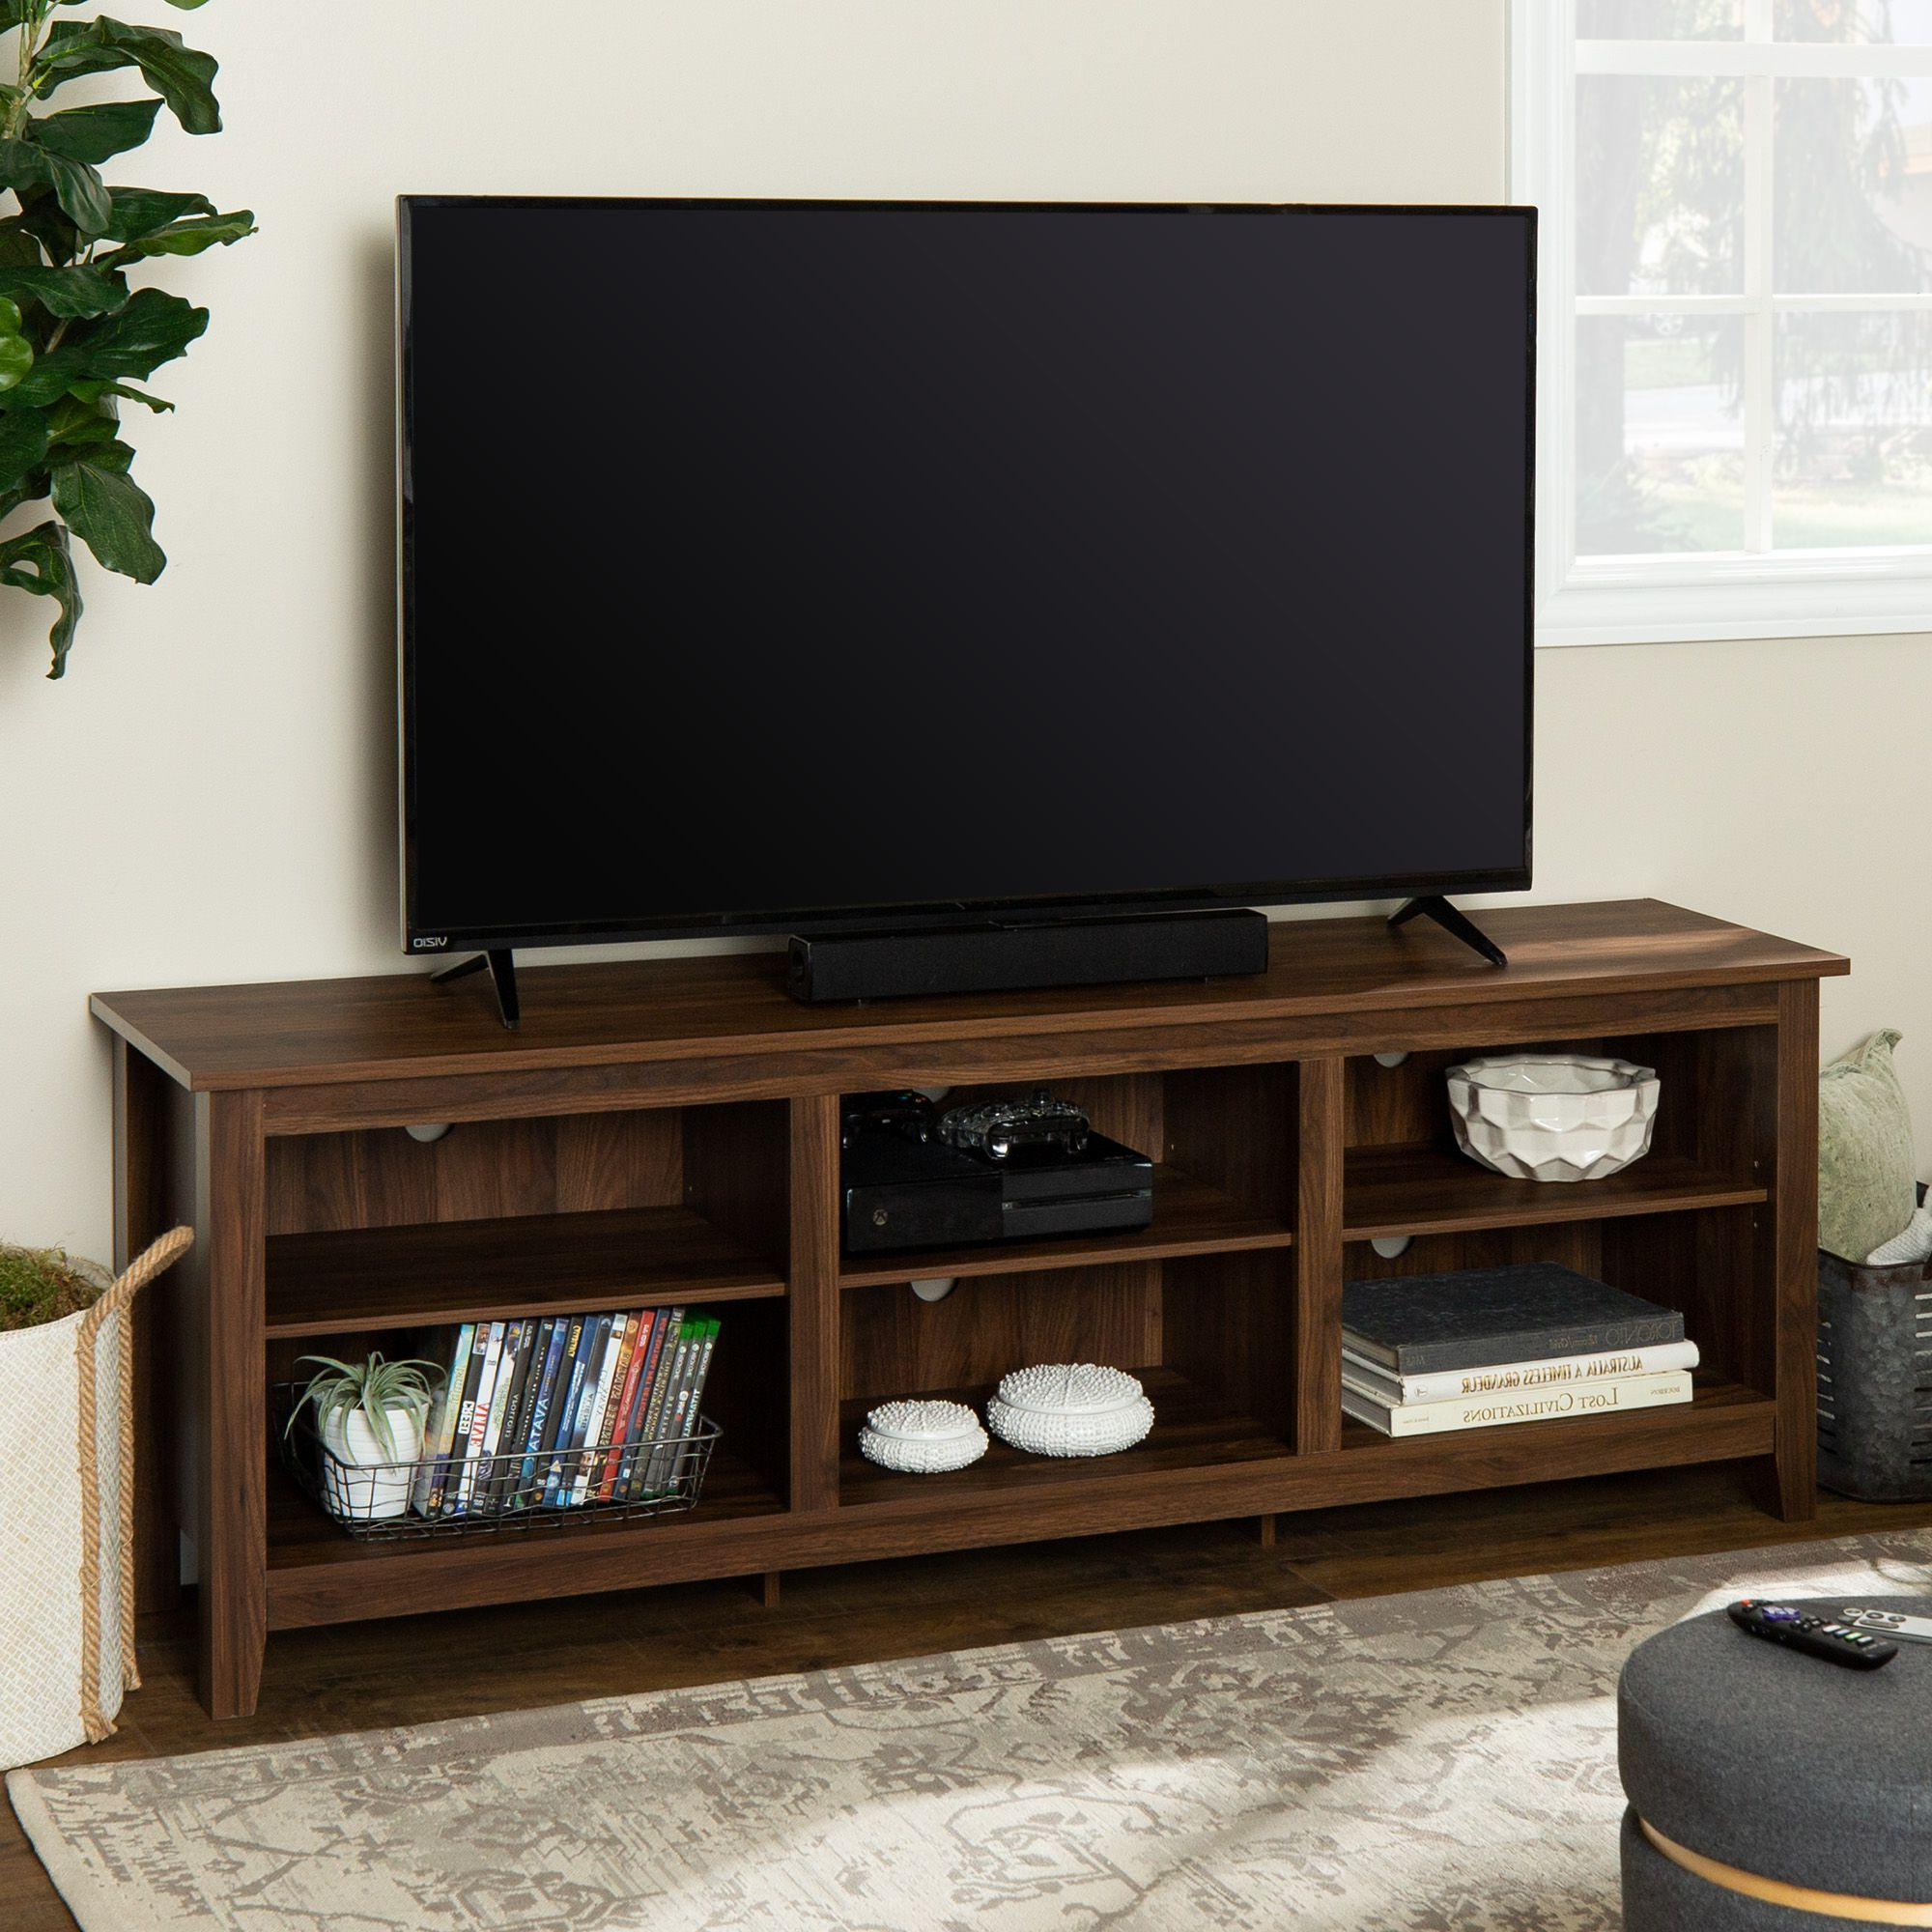 """Favorite Manor Park Wood Tv Media Storage Stand For Tvs Up To 78 Regarding Grandstaff Tv Stands For Tvs Up To 78"""" (View 10 of 25)"""